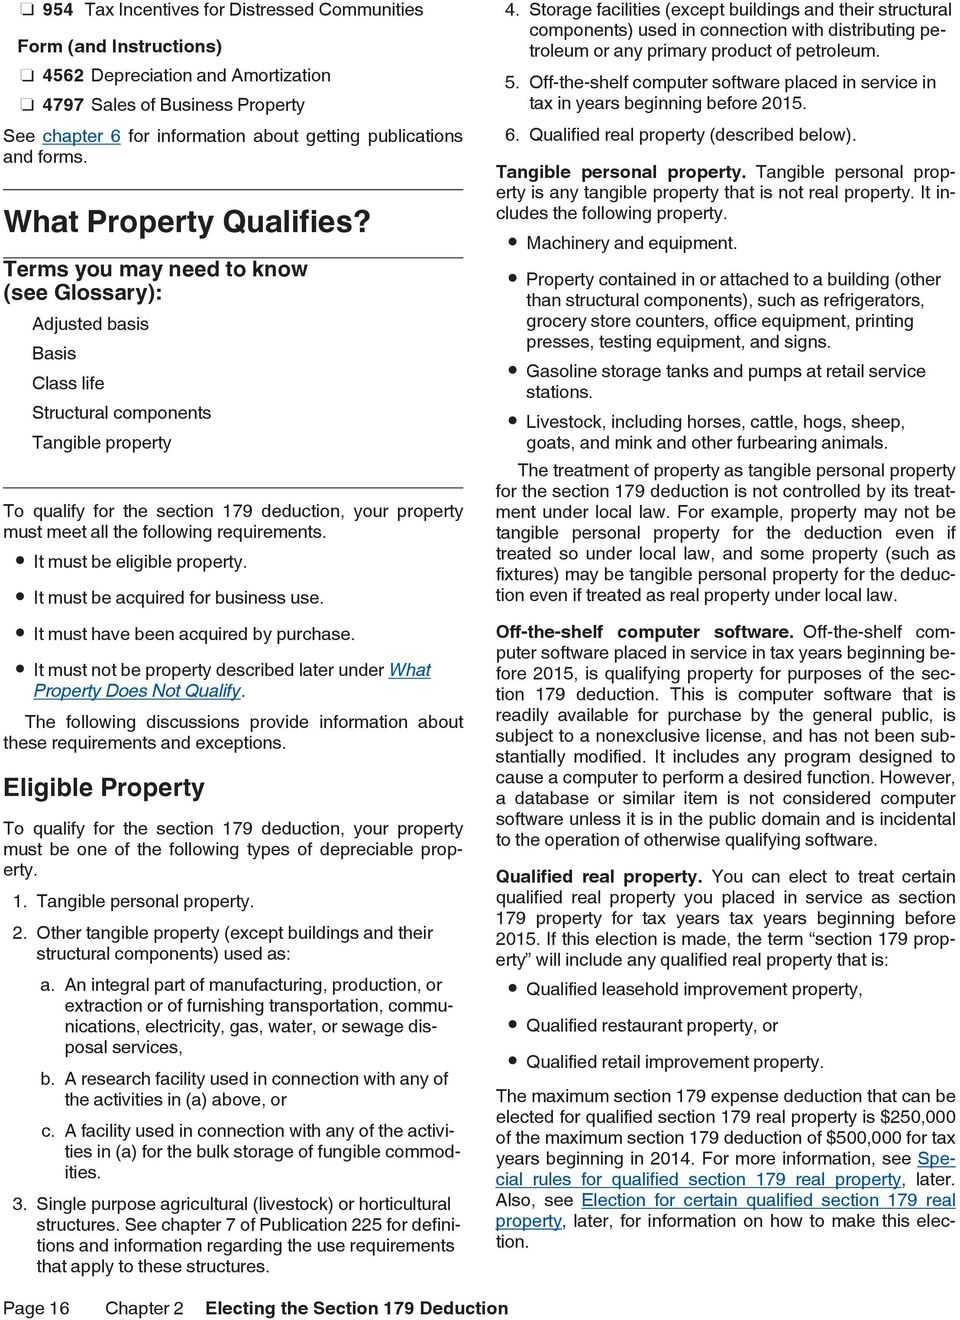 Terms you may need to know (see Glossary): Adjusted basis Basis Class life Structural components Tangible property To qualify for the section 179 deduction, your property must meet all the following